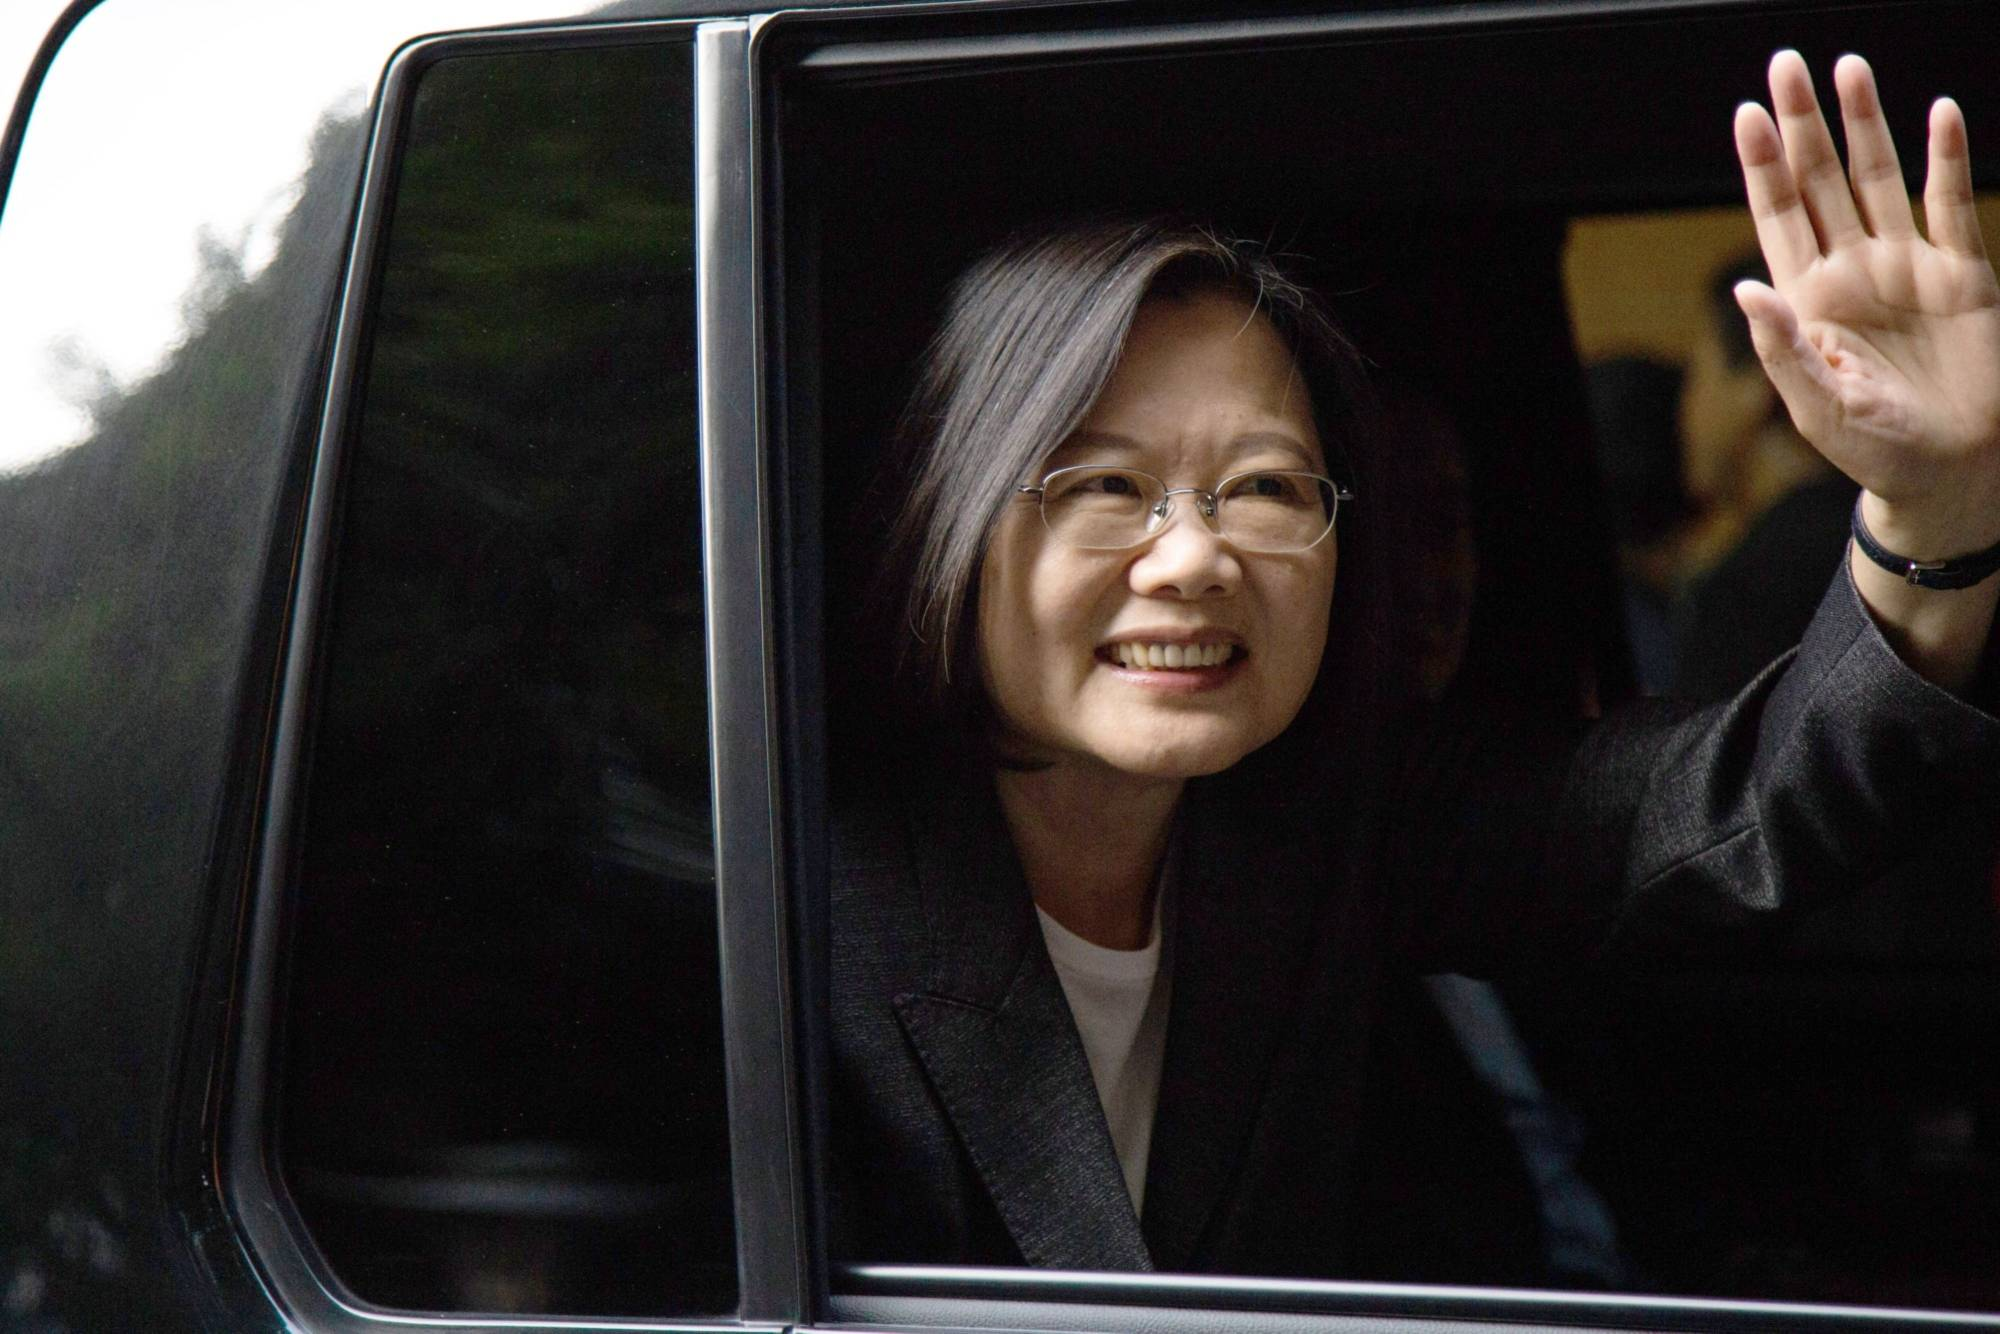 Tsai Ing-wen, Taiwan's president, leaves a polling station during a presidential and legislative election in Taipei in January. | BLOOMBERG